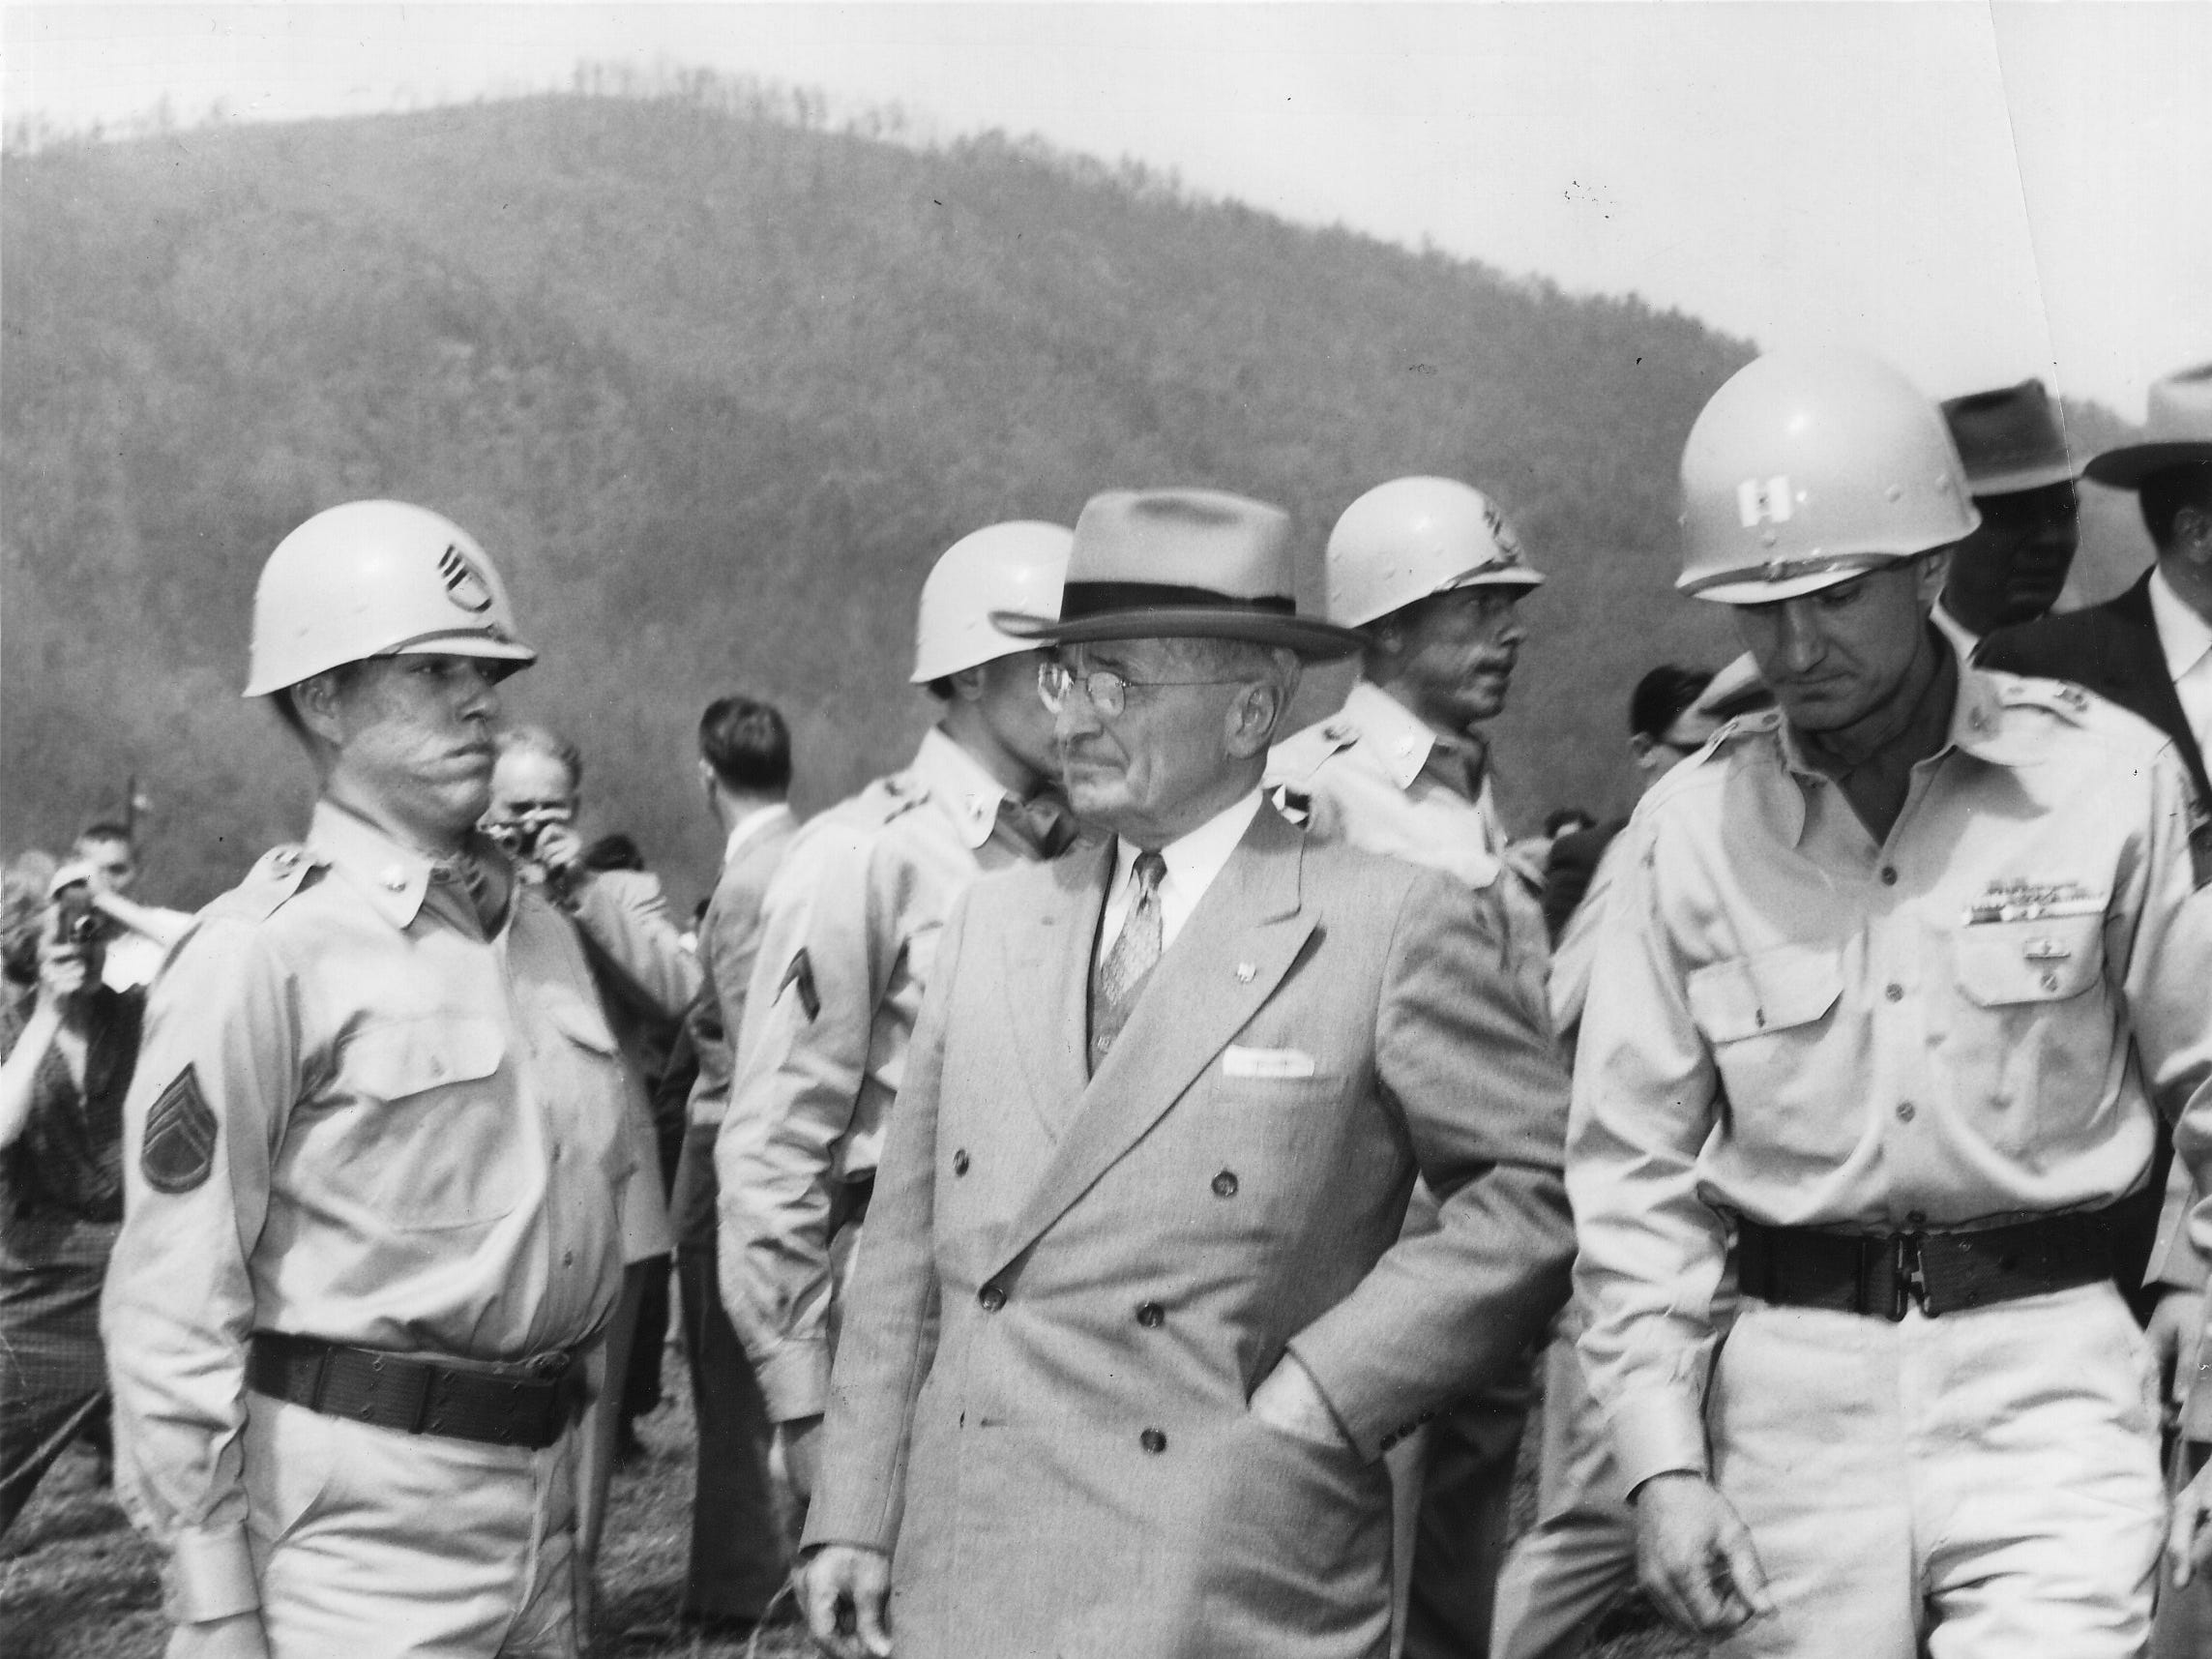 Former President Harry S. Truman is escorted by National Guardsmen during the second annual Cosby Ramp Festival on April 24, 1955.